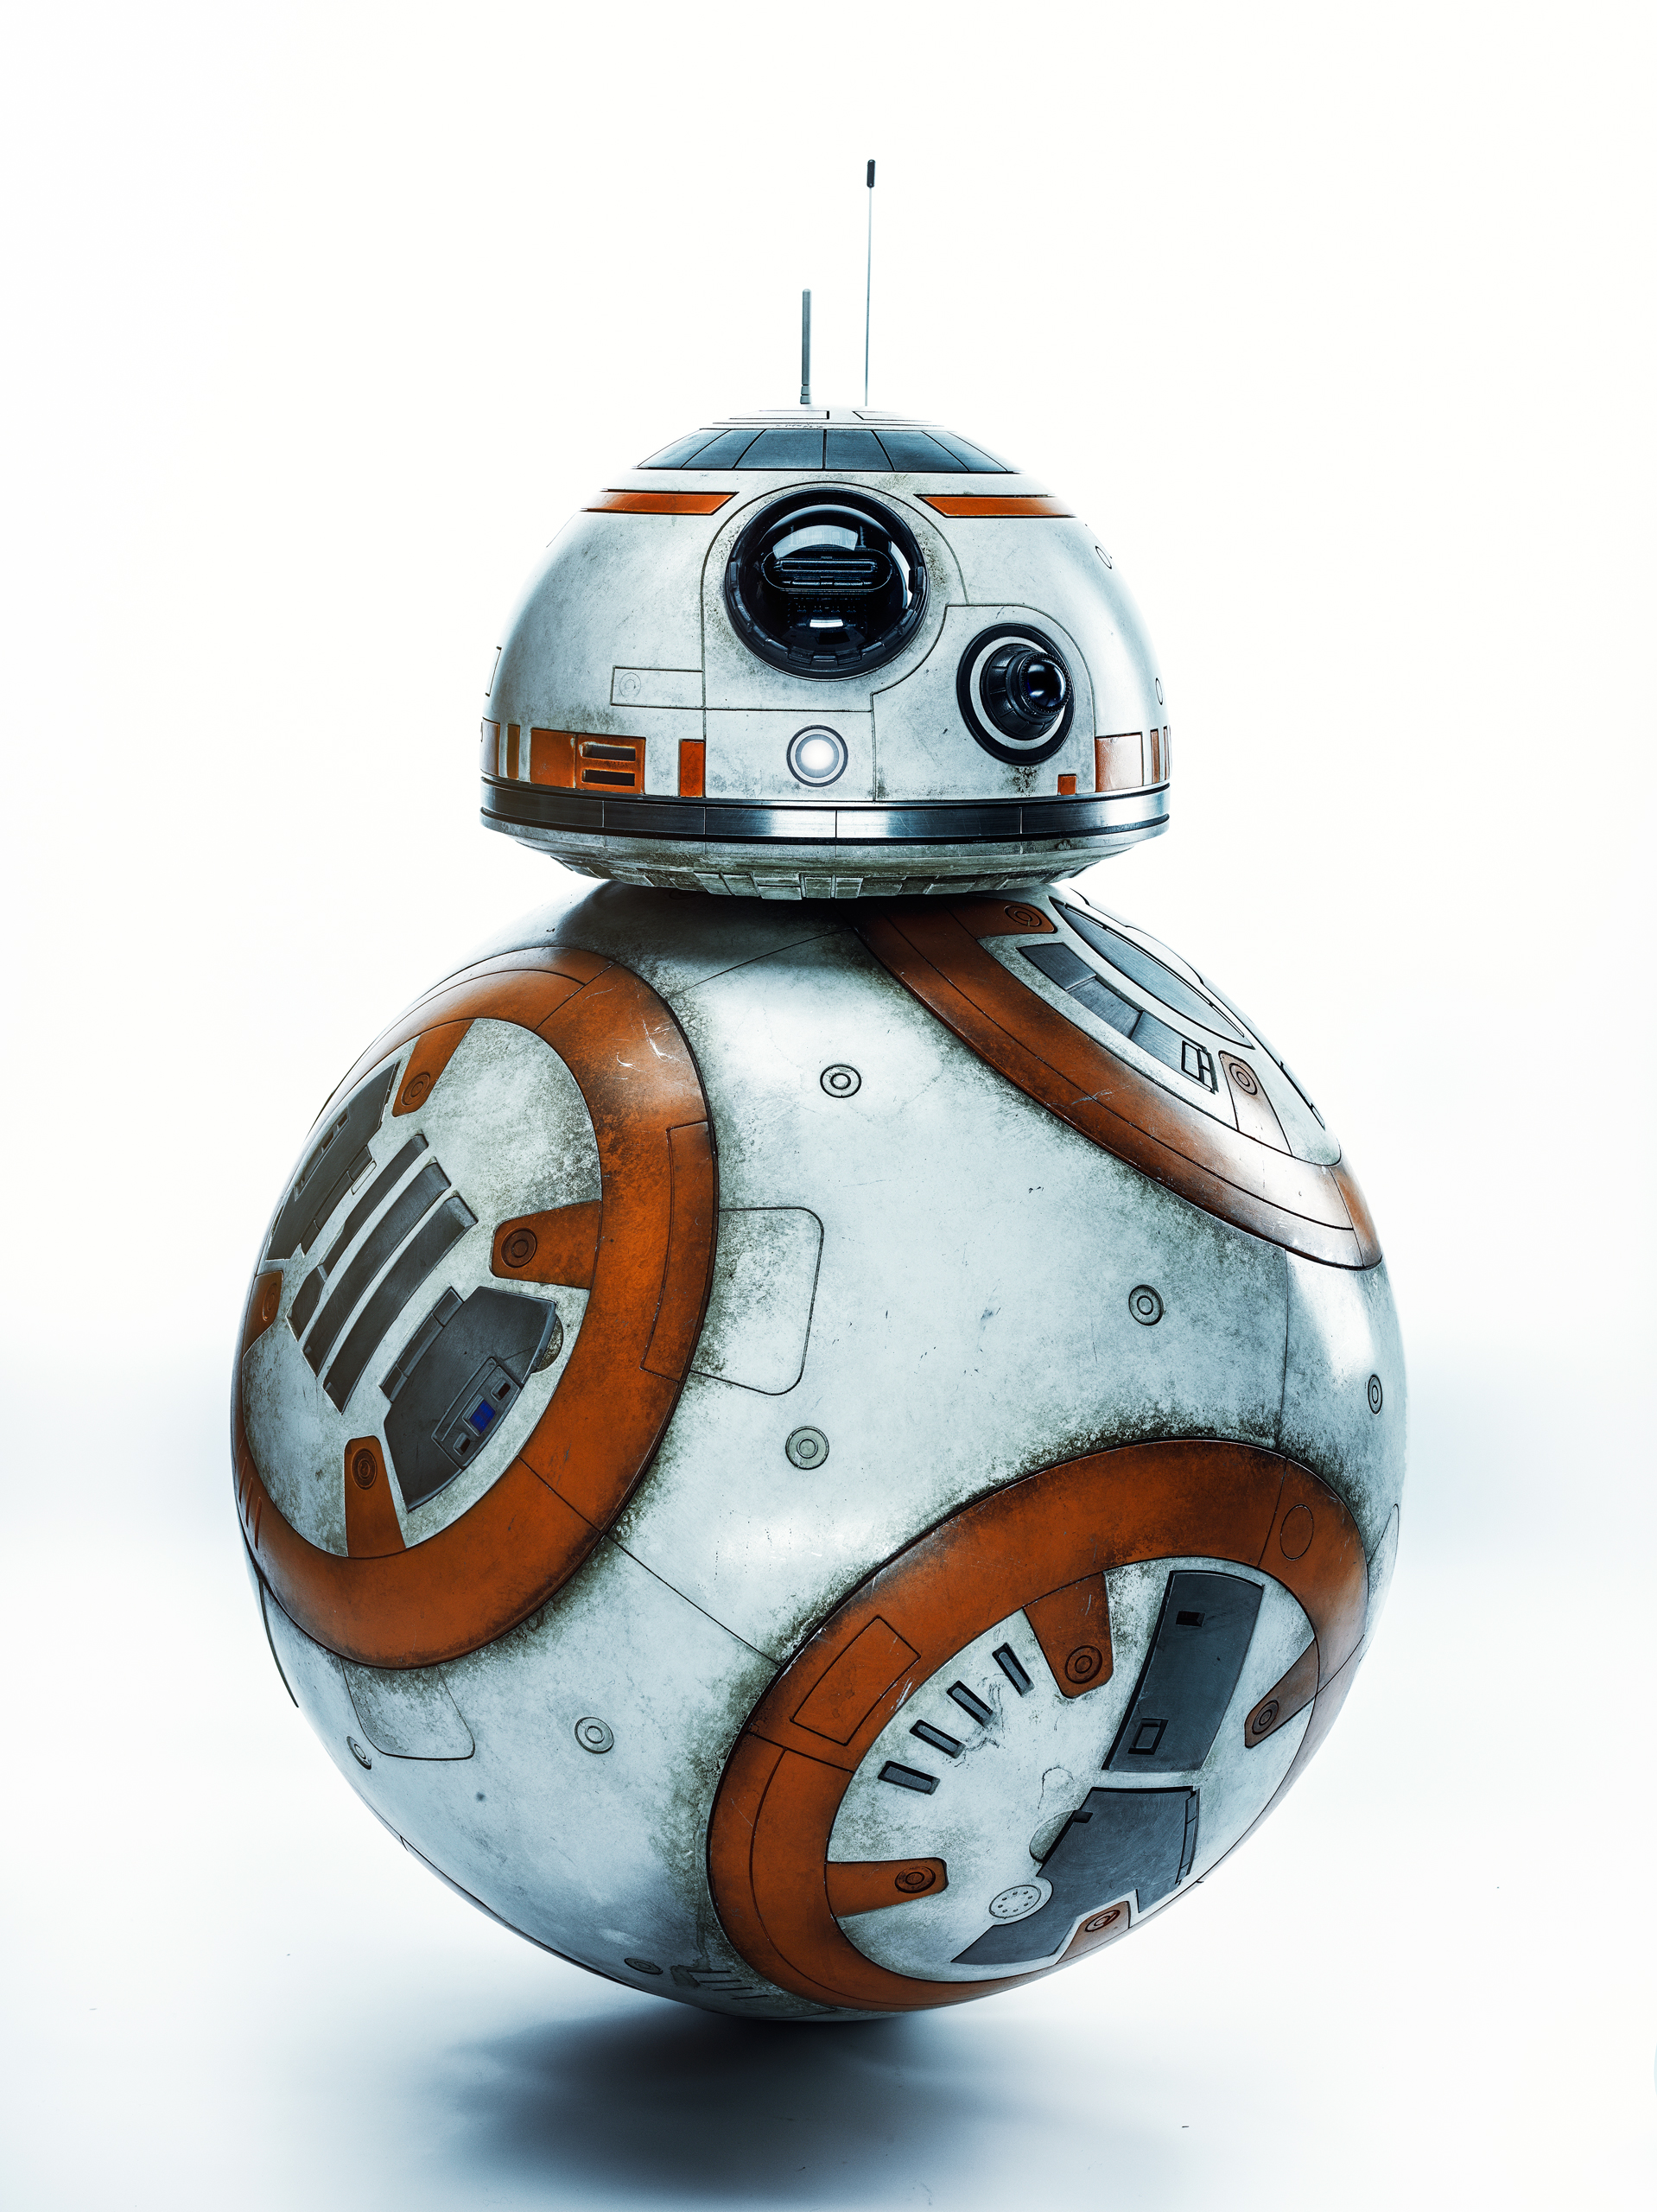 Abrams was determined to use as little CGI as possible, so he made BB-8—a fully functioning robot—who has already become an iconic character.